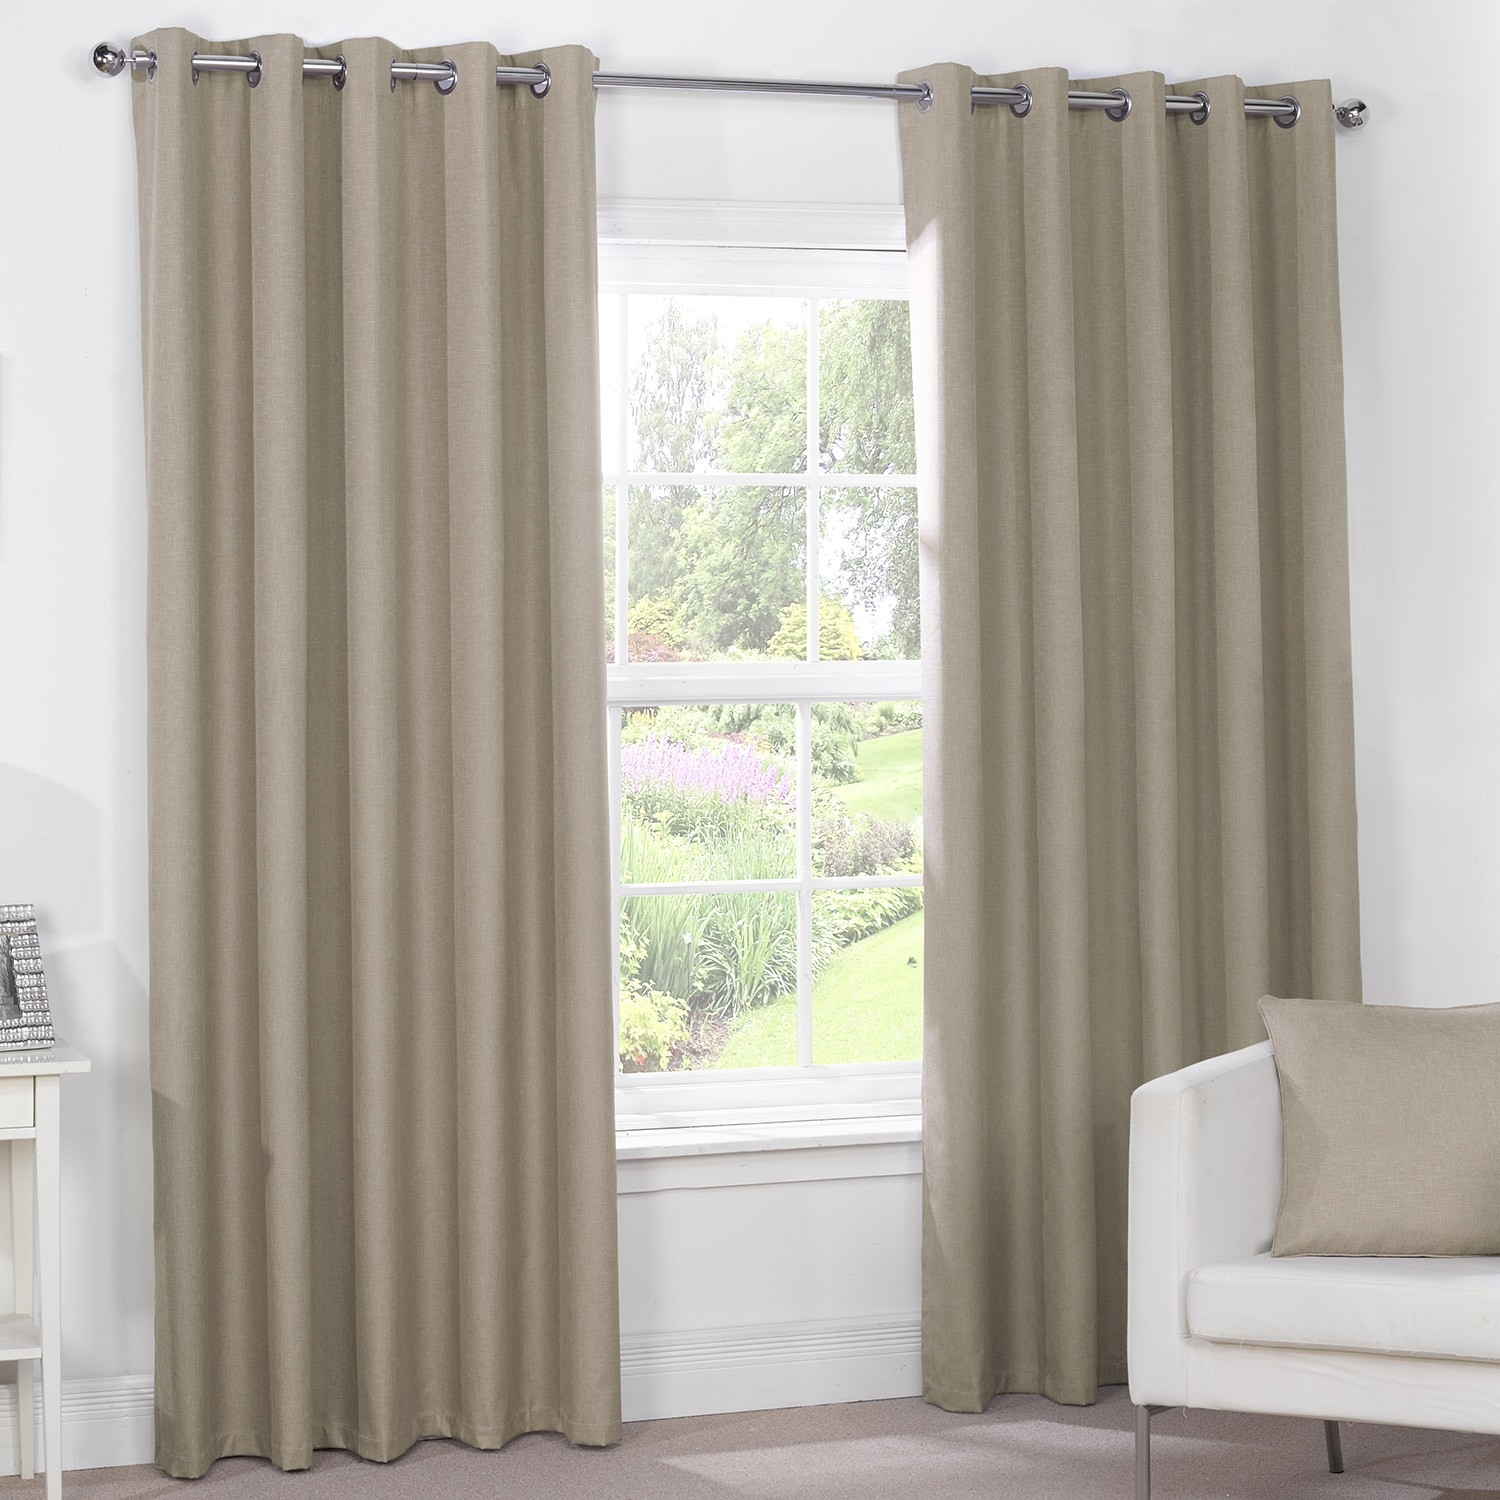 Luna Mocha Luxury Blackout Eyelet Curtains Pair Eyelet Type In Brown Eyelet Curtains (Image 15 of 25)